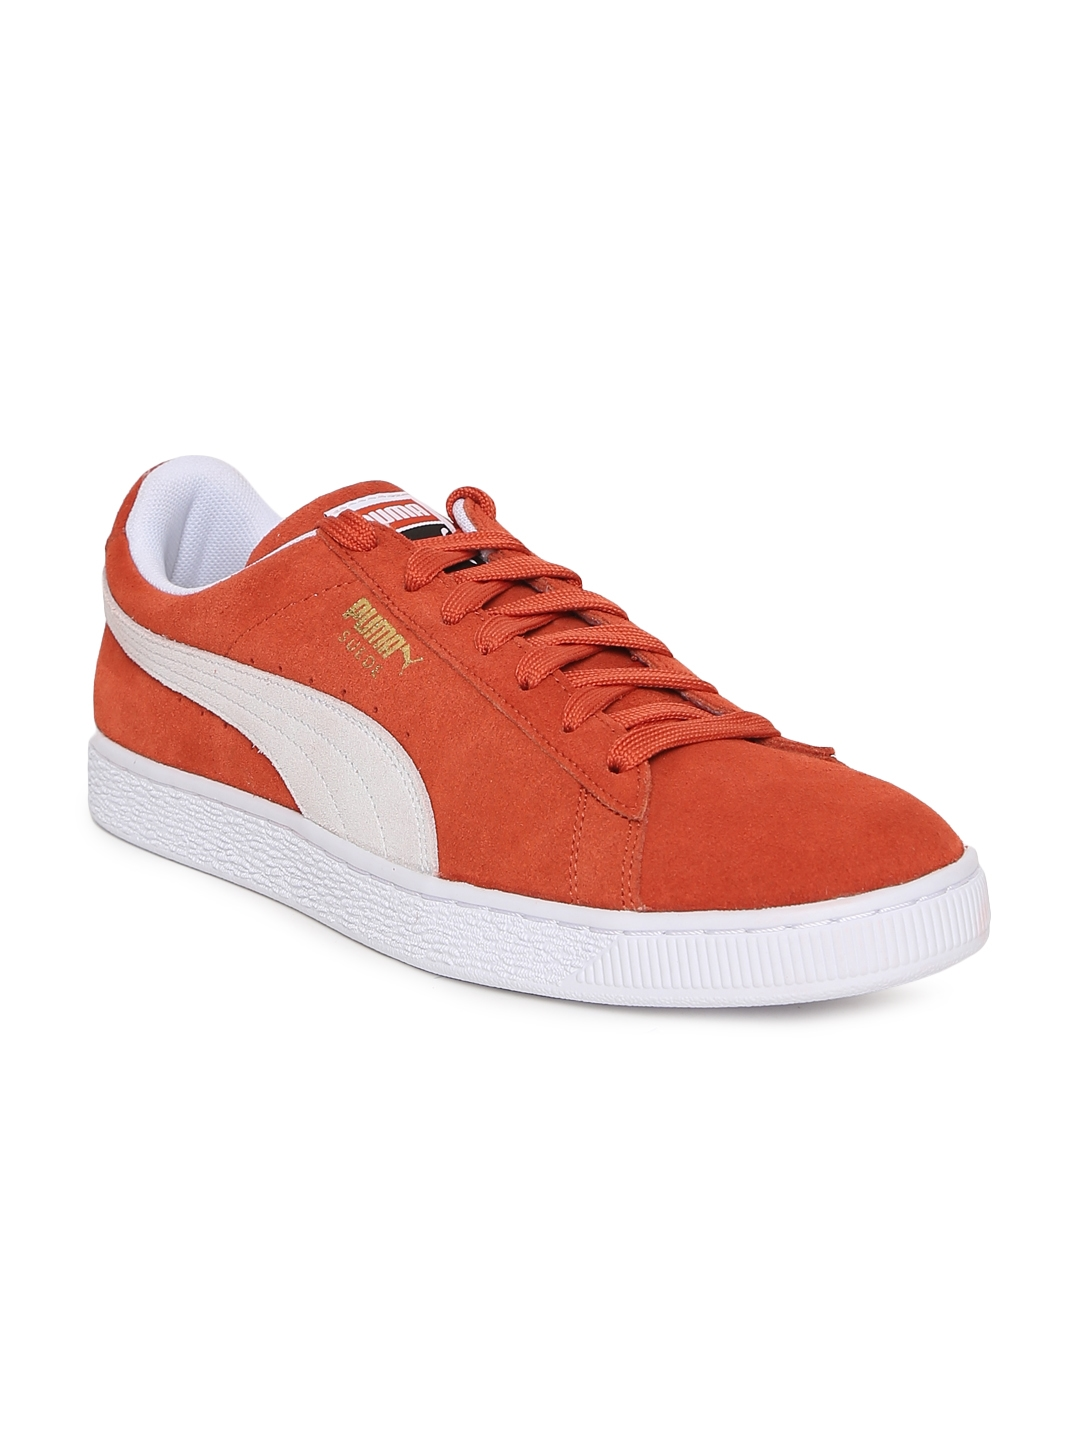 980ed185bae Buy Puma Unisex Orange Solid Suede Classic Sneakers - Casual Shoes ...